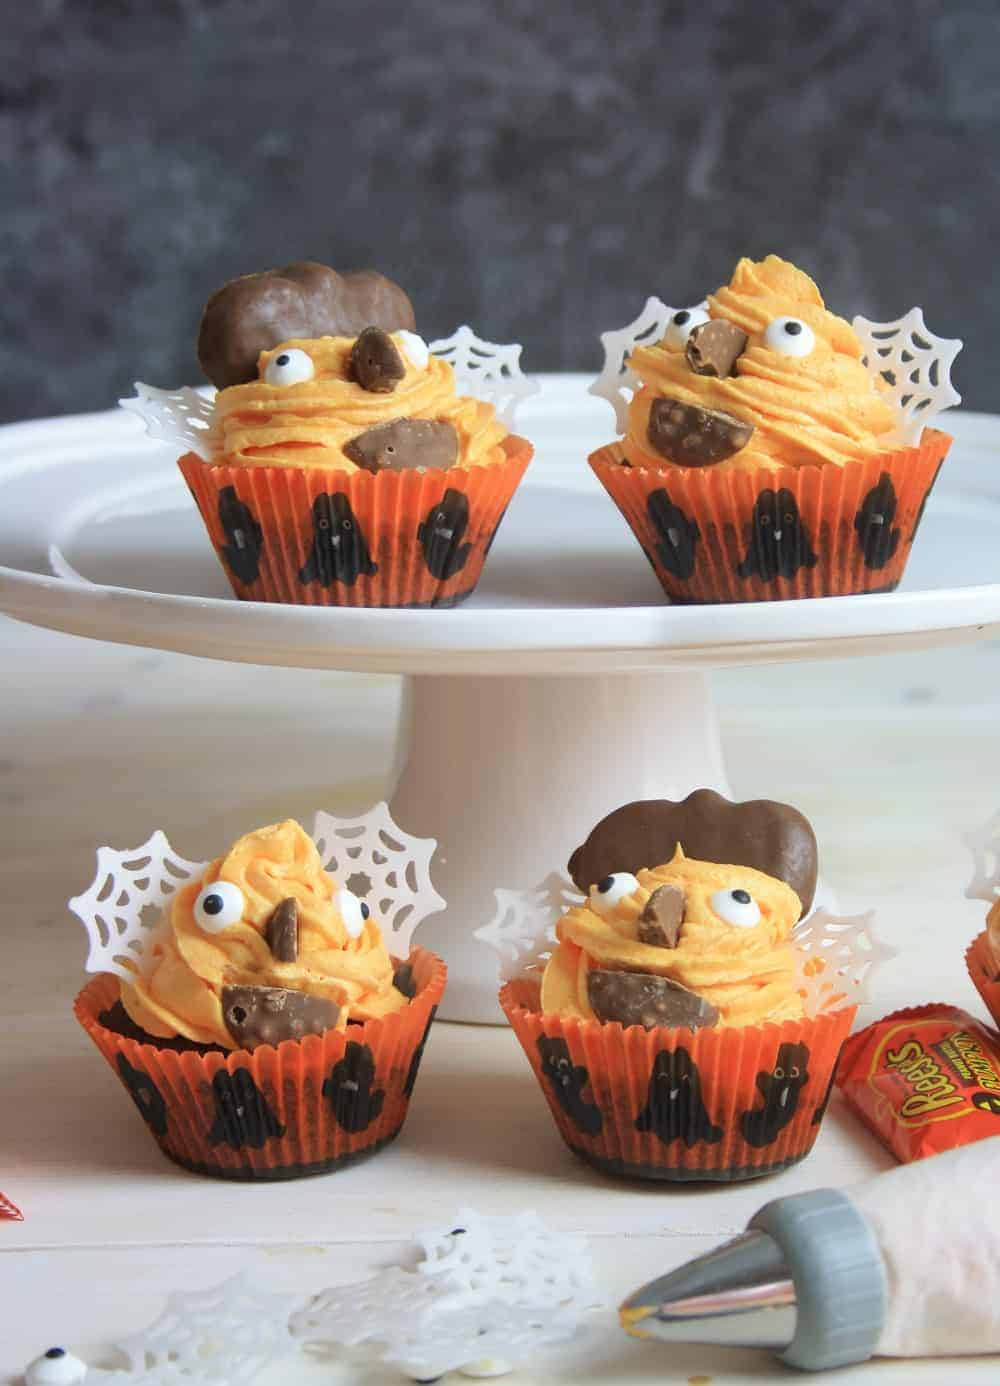 4 cupcakes decorated with Halloween decorations